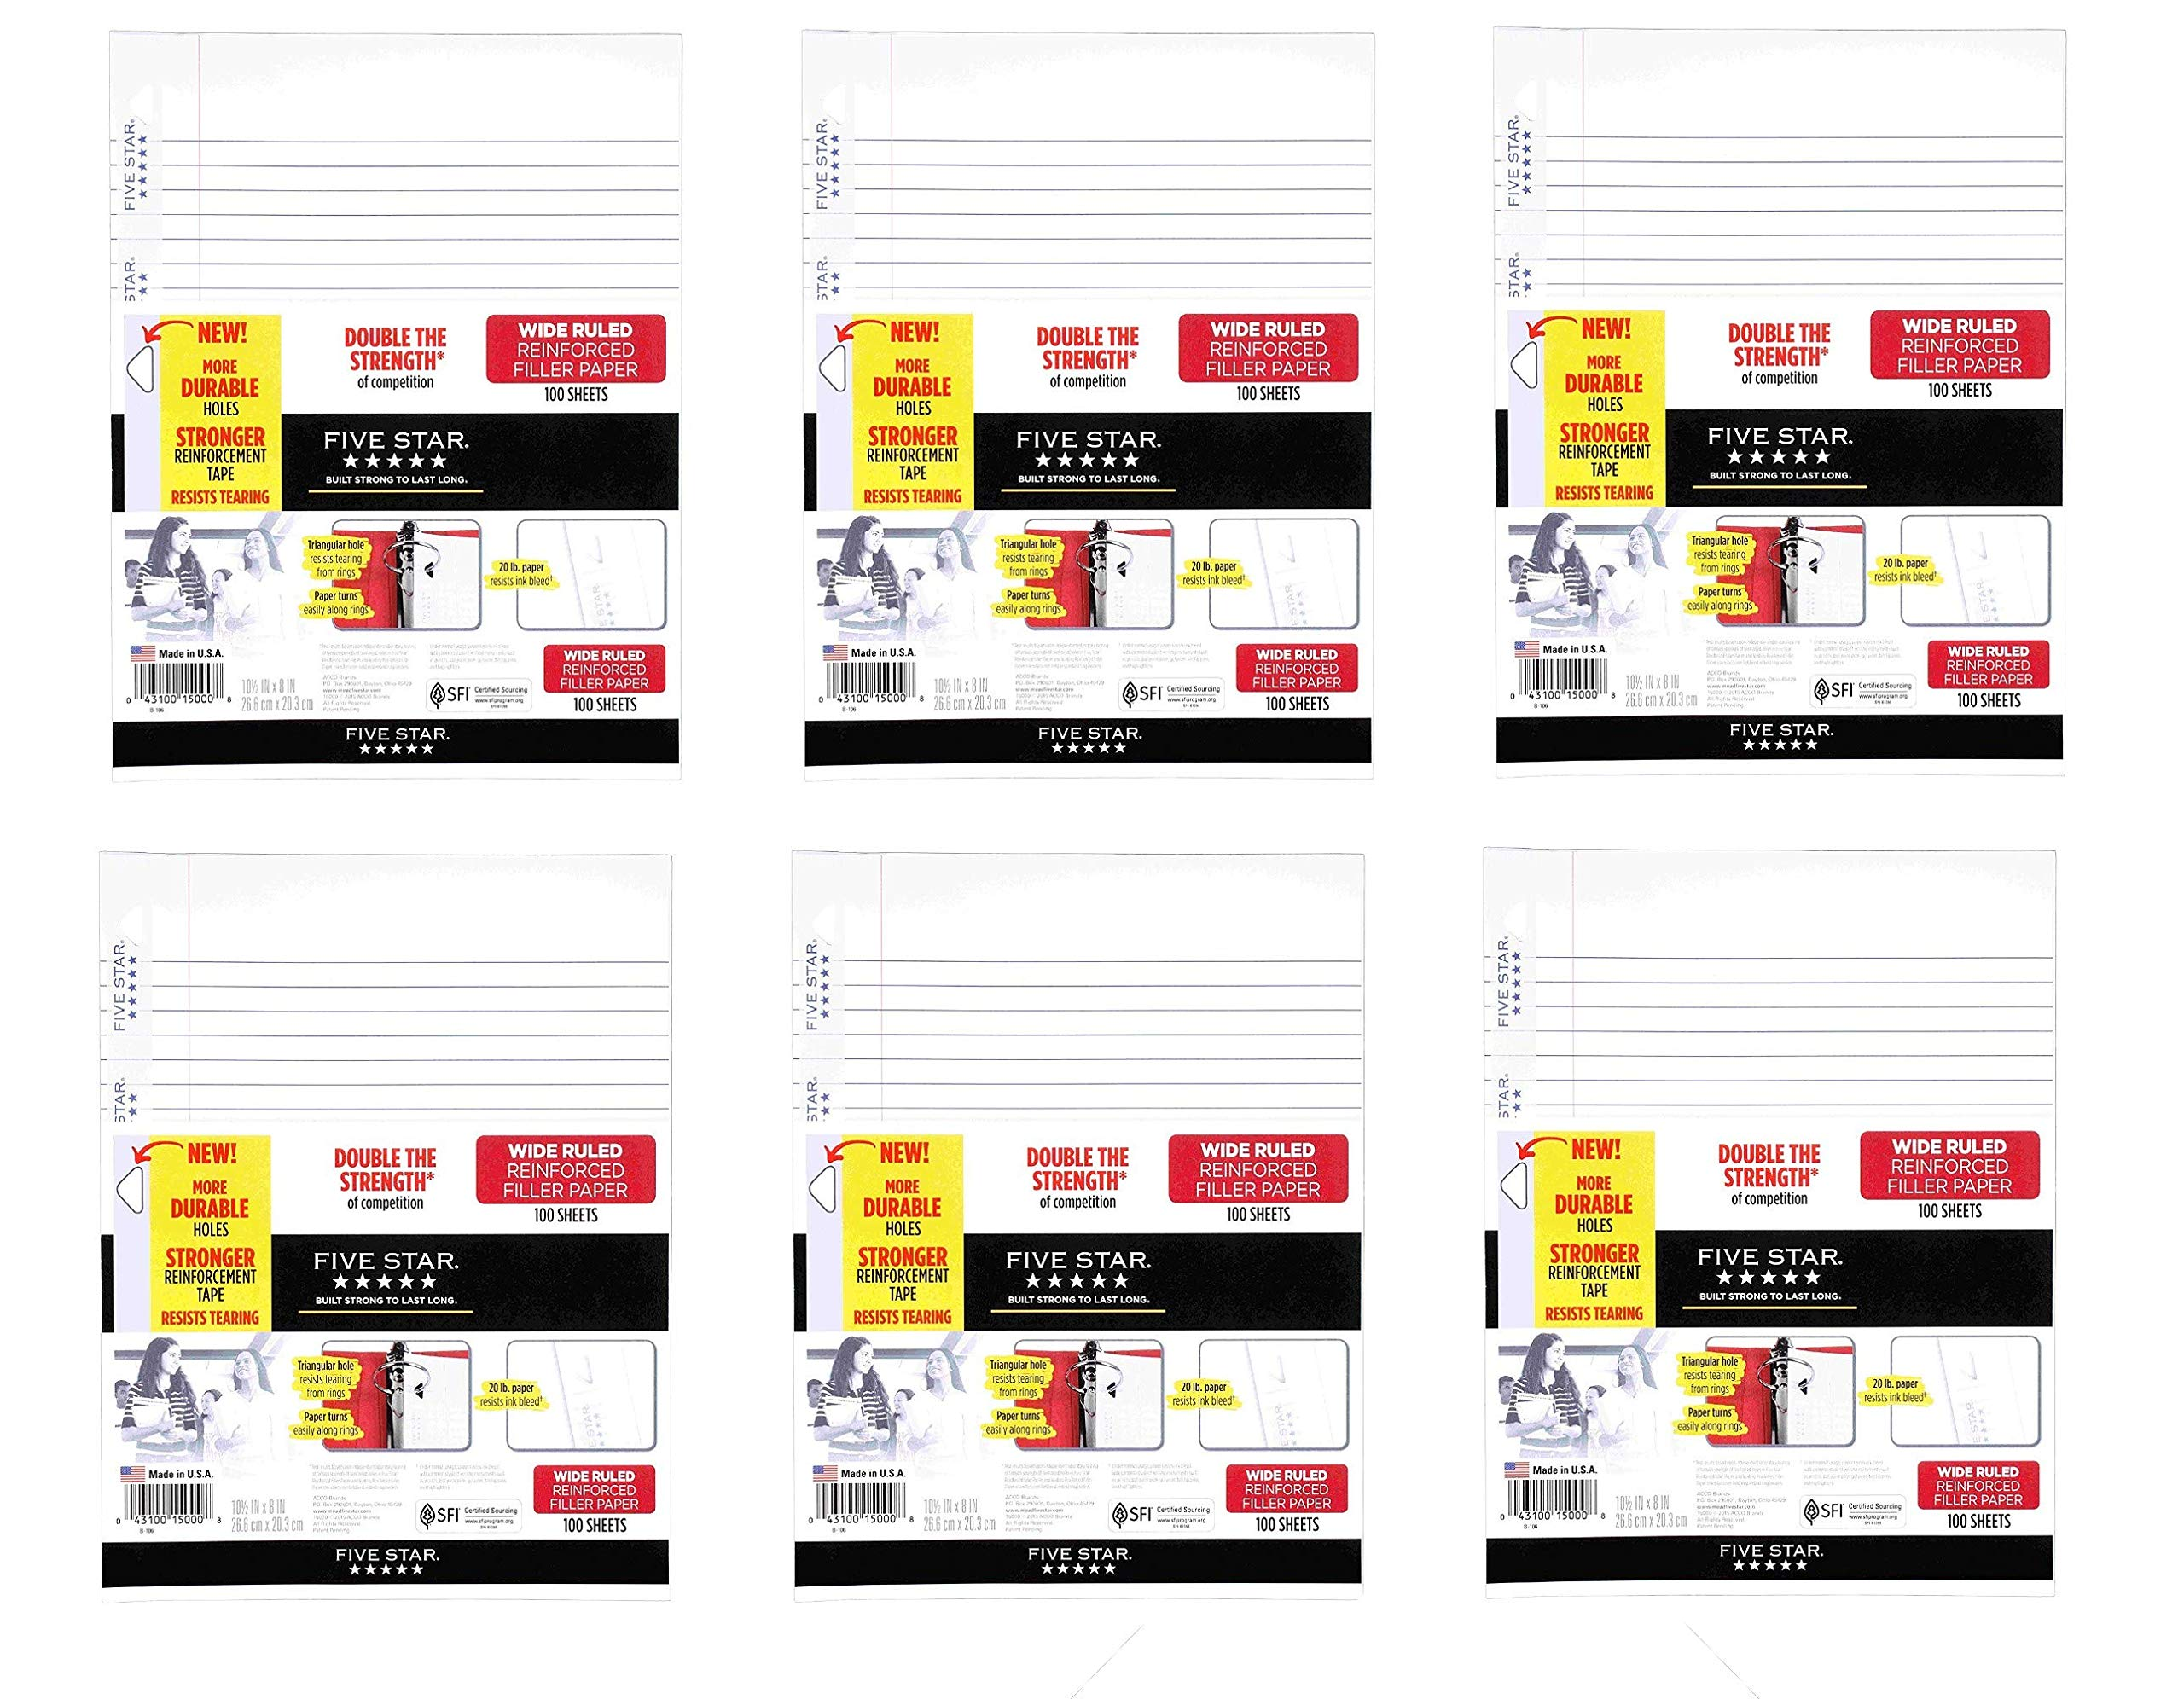 Five Star Filler Paper, Wide Ruled, Reinforced, Loose Leaf Paper, 10.5 x 8, 100 Sheets/Pack, Sold as 6 Pack by Five Star